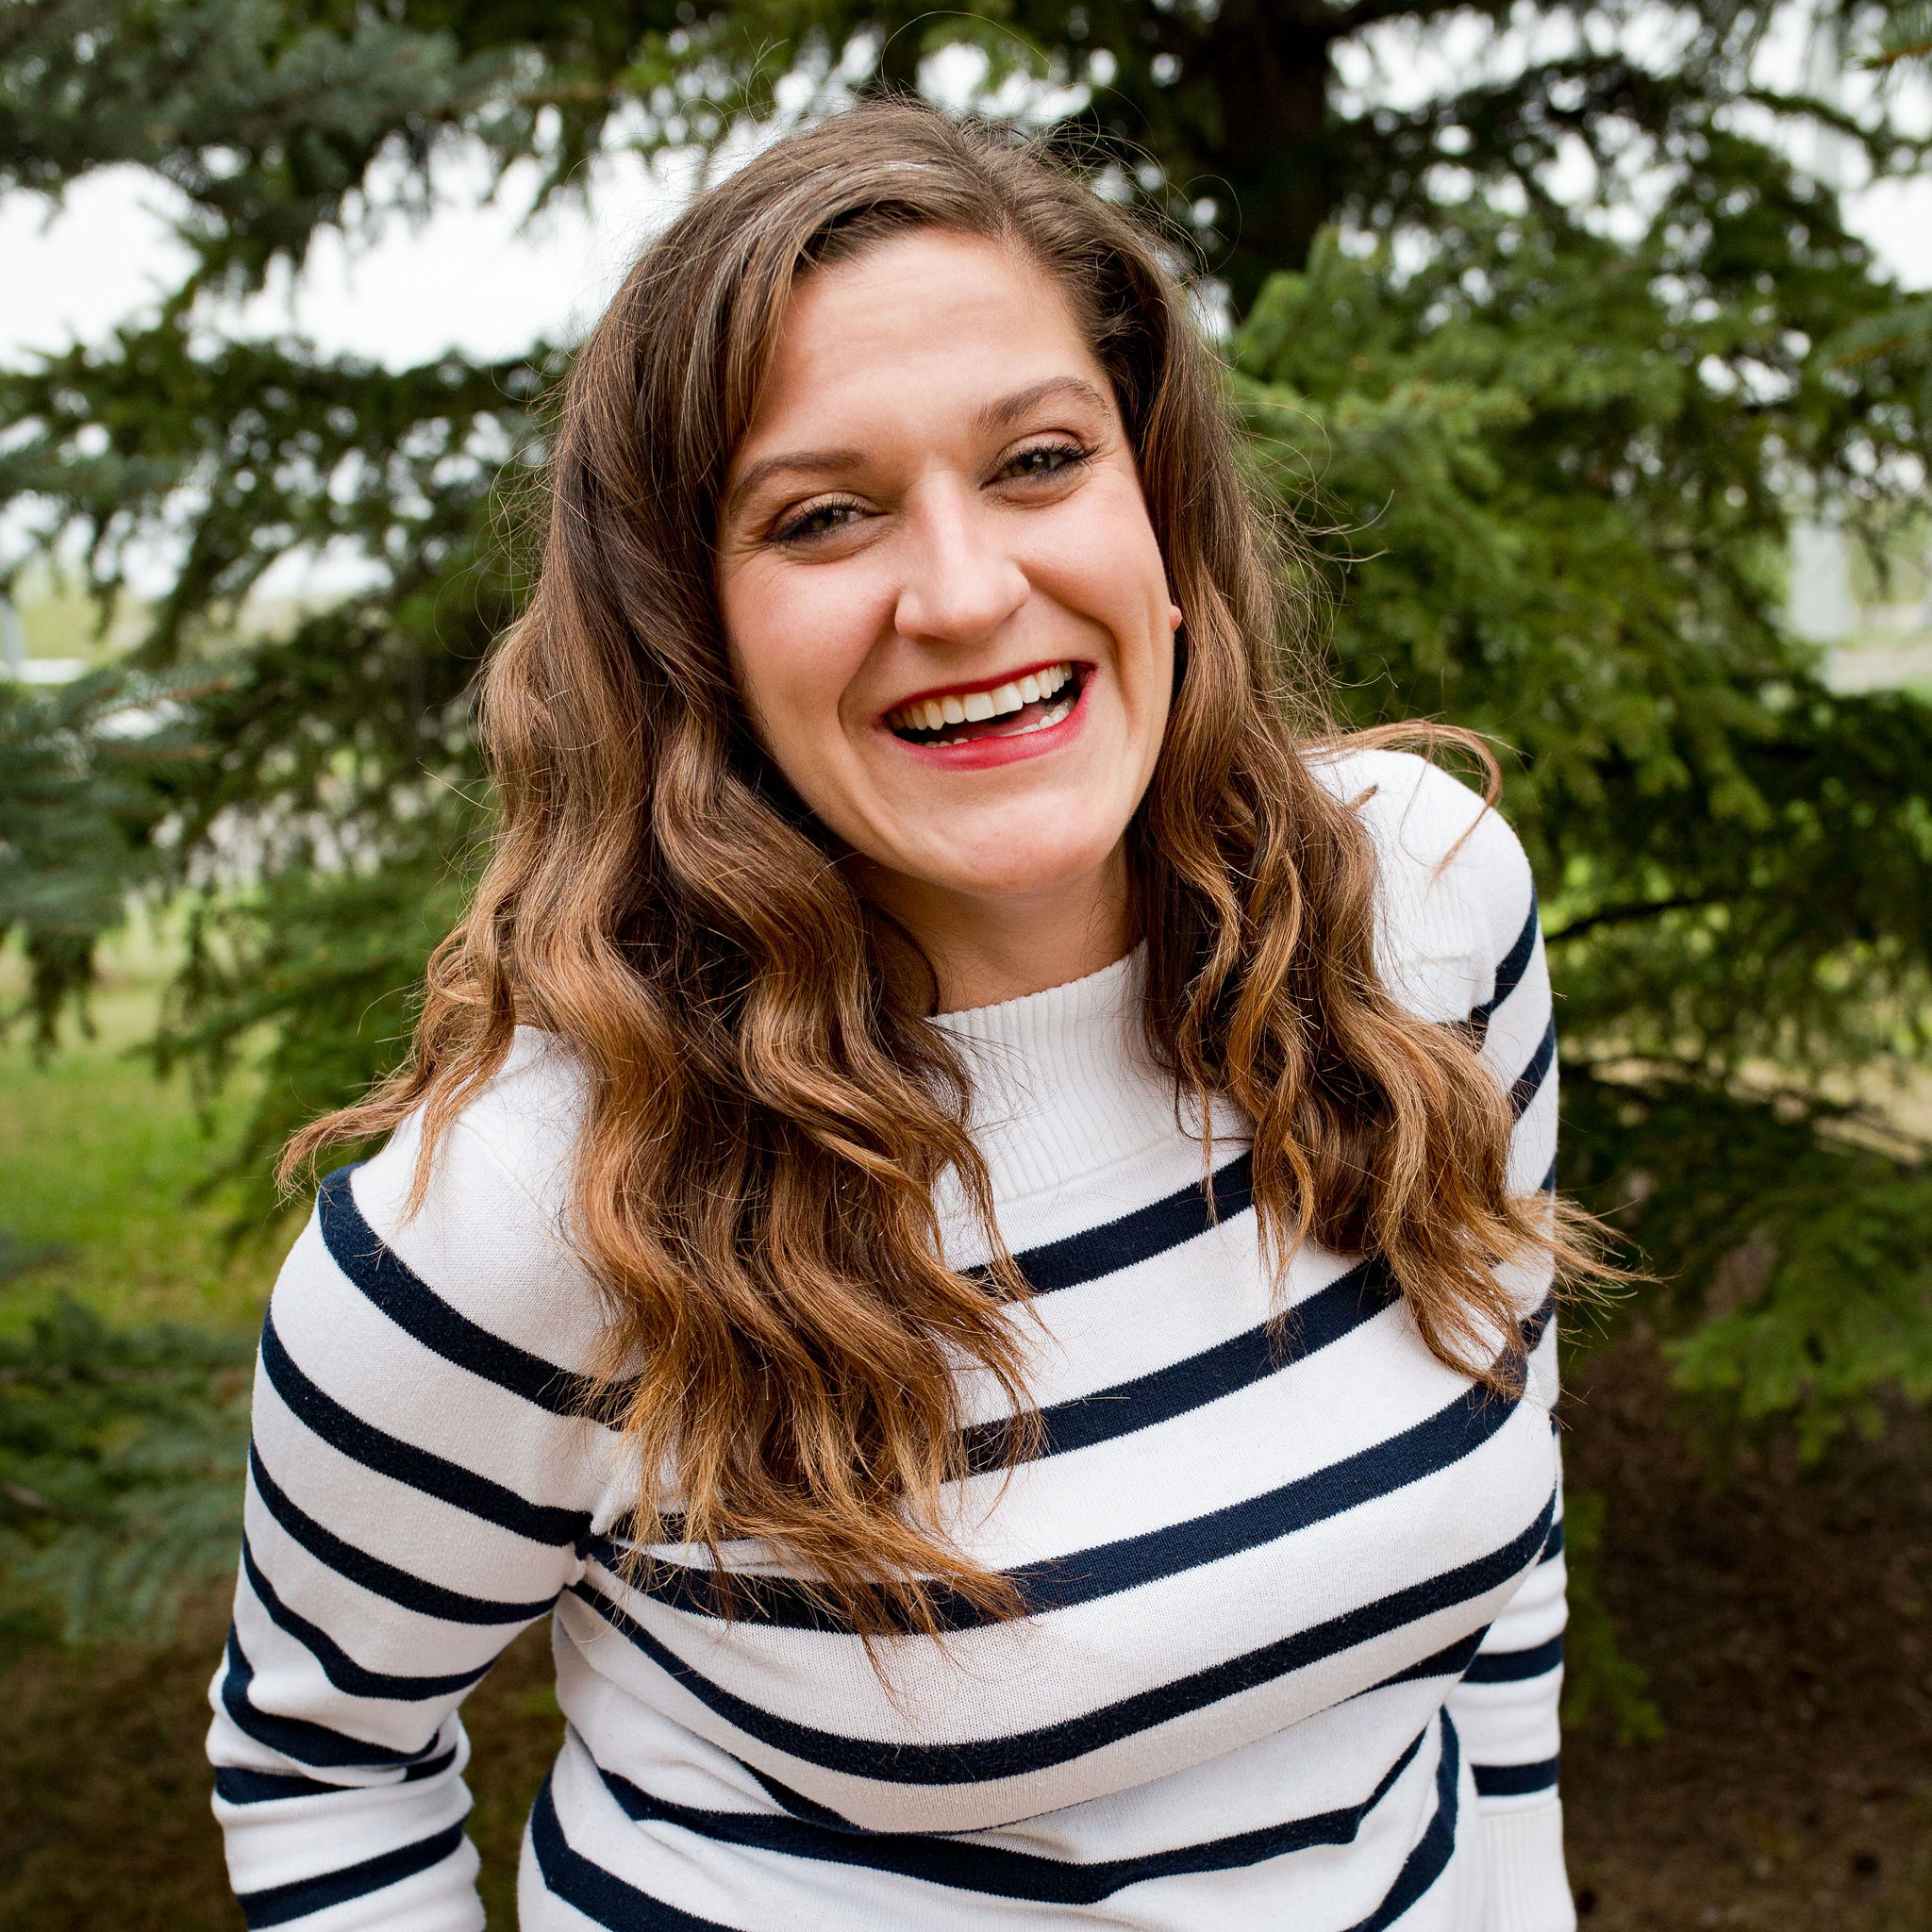 Rebecca Chaulk The Chaulk Team Real Estate - YOUR CALGARY REAL ESTATE PROFESSIONALRebecca is a native Calgarian and resident of Lake Chaparral, working as a licensed Realtor® with The Chaulk Team since 2005 with 14 years in the industry. Rebecca's focus is on Buyers, Calgary Condominiums and Calgary Home purchases and Calgary Listings. She also is well versed in Country acreages in M.D Foothills and M. D Rockyview Her outgoing personality brings energy and enthusiasm to every client relationship. Rebecca has built up a growing client list of her own due to the confidence clients have placed in her because of her thorough and passionate service level.Rebecca has also undergone continuing education to obtain her designation as a Certified Condominium Specialist as well as completing studies in Negotiations and Country Residential and Land. Rebecca believes that her commitment to continual upgrading of her skills and knowledge will be an advantage to her clients.Besides working with clients as a buyers agent & with her listings she works with the team in market analyses, property evaluations, open houses, client care, publicity, social marketing and coordinating any related promotional events.Three Favorite Things: Her horse/ Family & Friends/ Australia403.680.2320Rebecca@chaulkrealestate.comwww,Chaulkrealestate.com